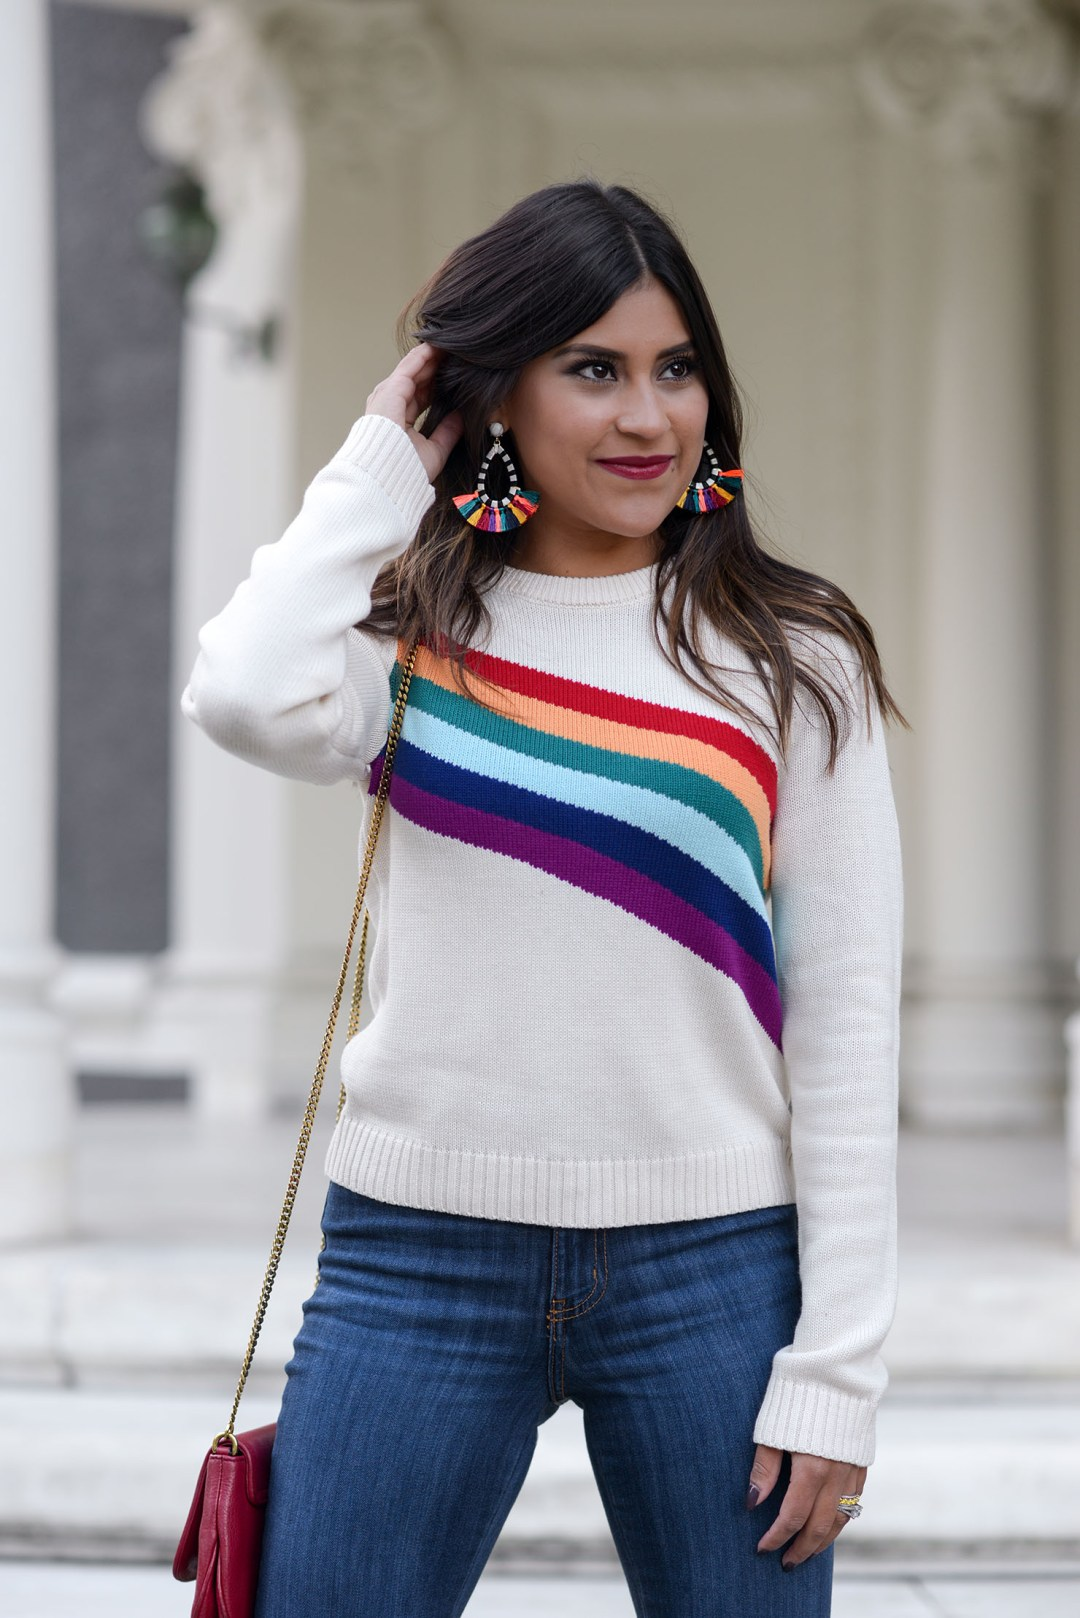 Lifestyle blogger Kelsey Kaplan of Kelsey Kaplan Fashion wearing rainbow graphic sweater and Stuart Weitzman Clinger Bootie and red Gucci purse